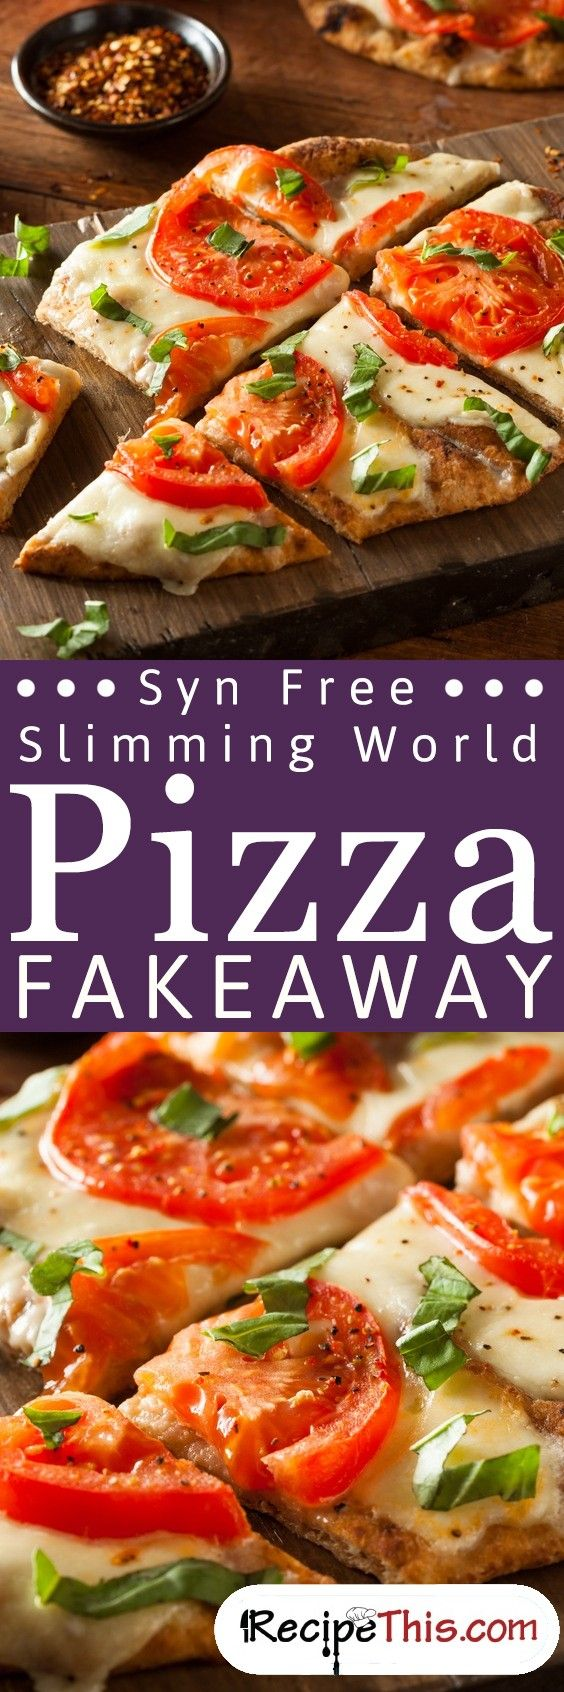 Syn Free Slimming World Fakeaway From RecipeThis.com